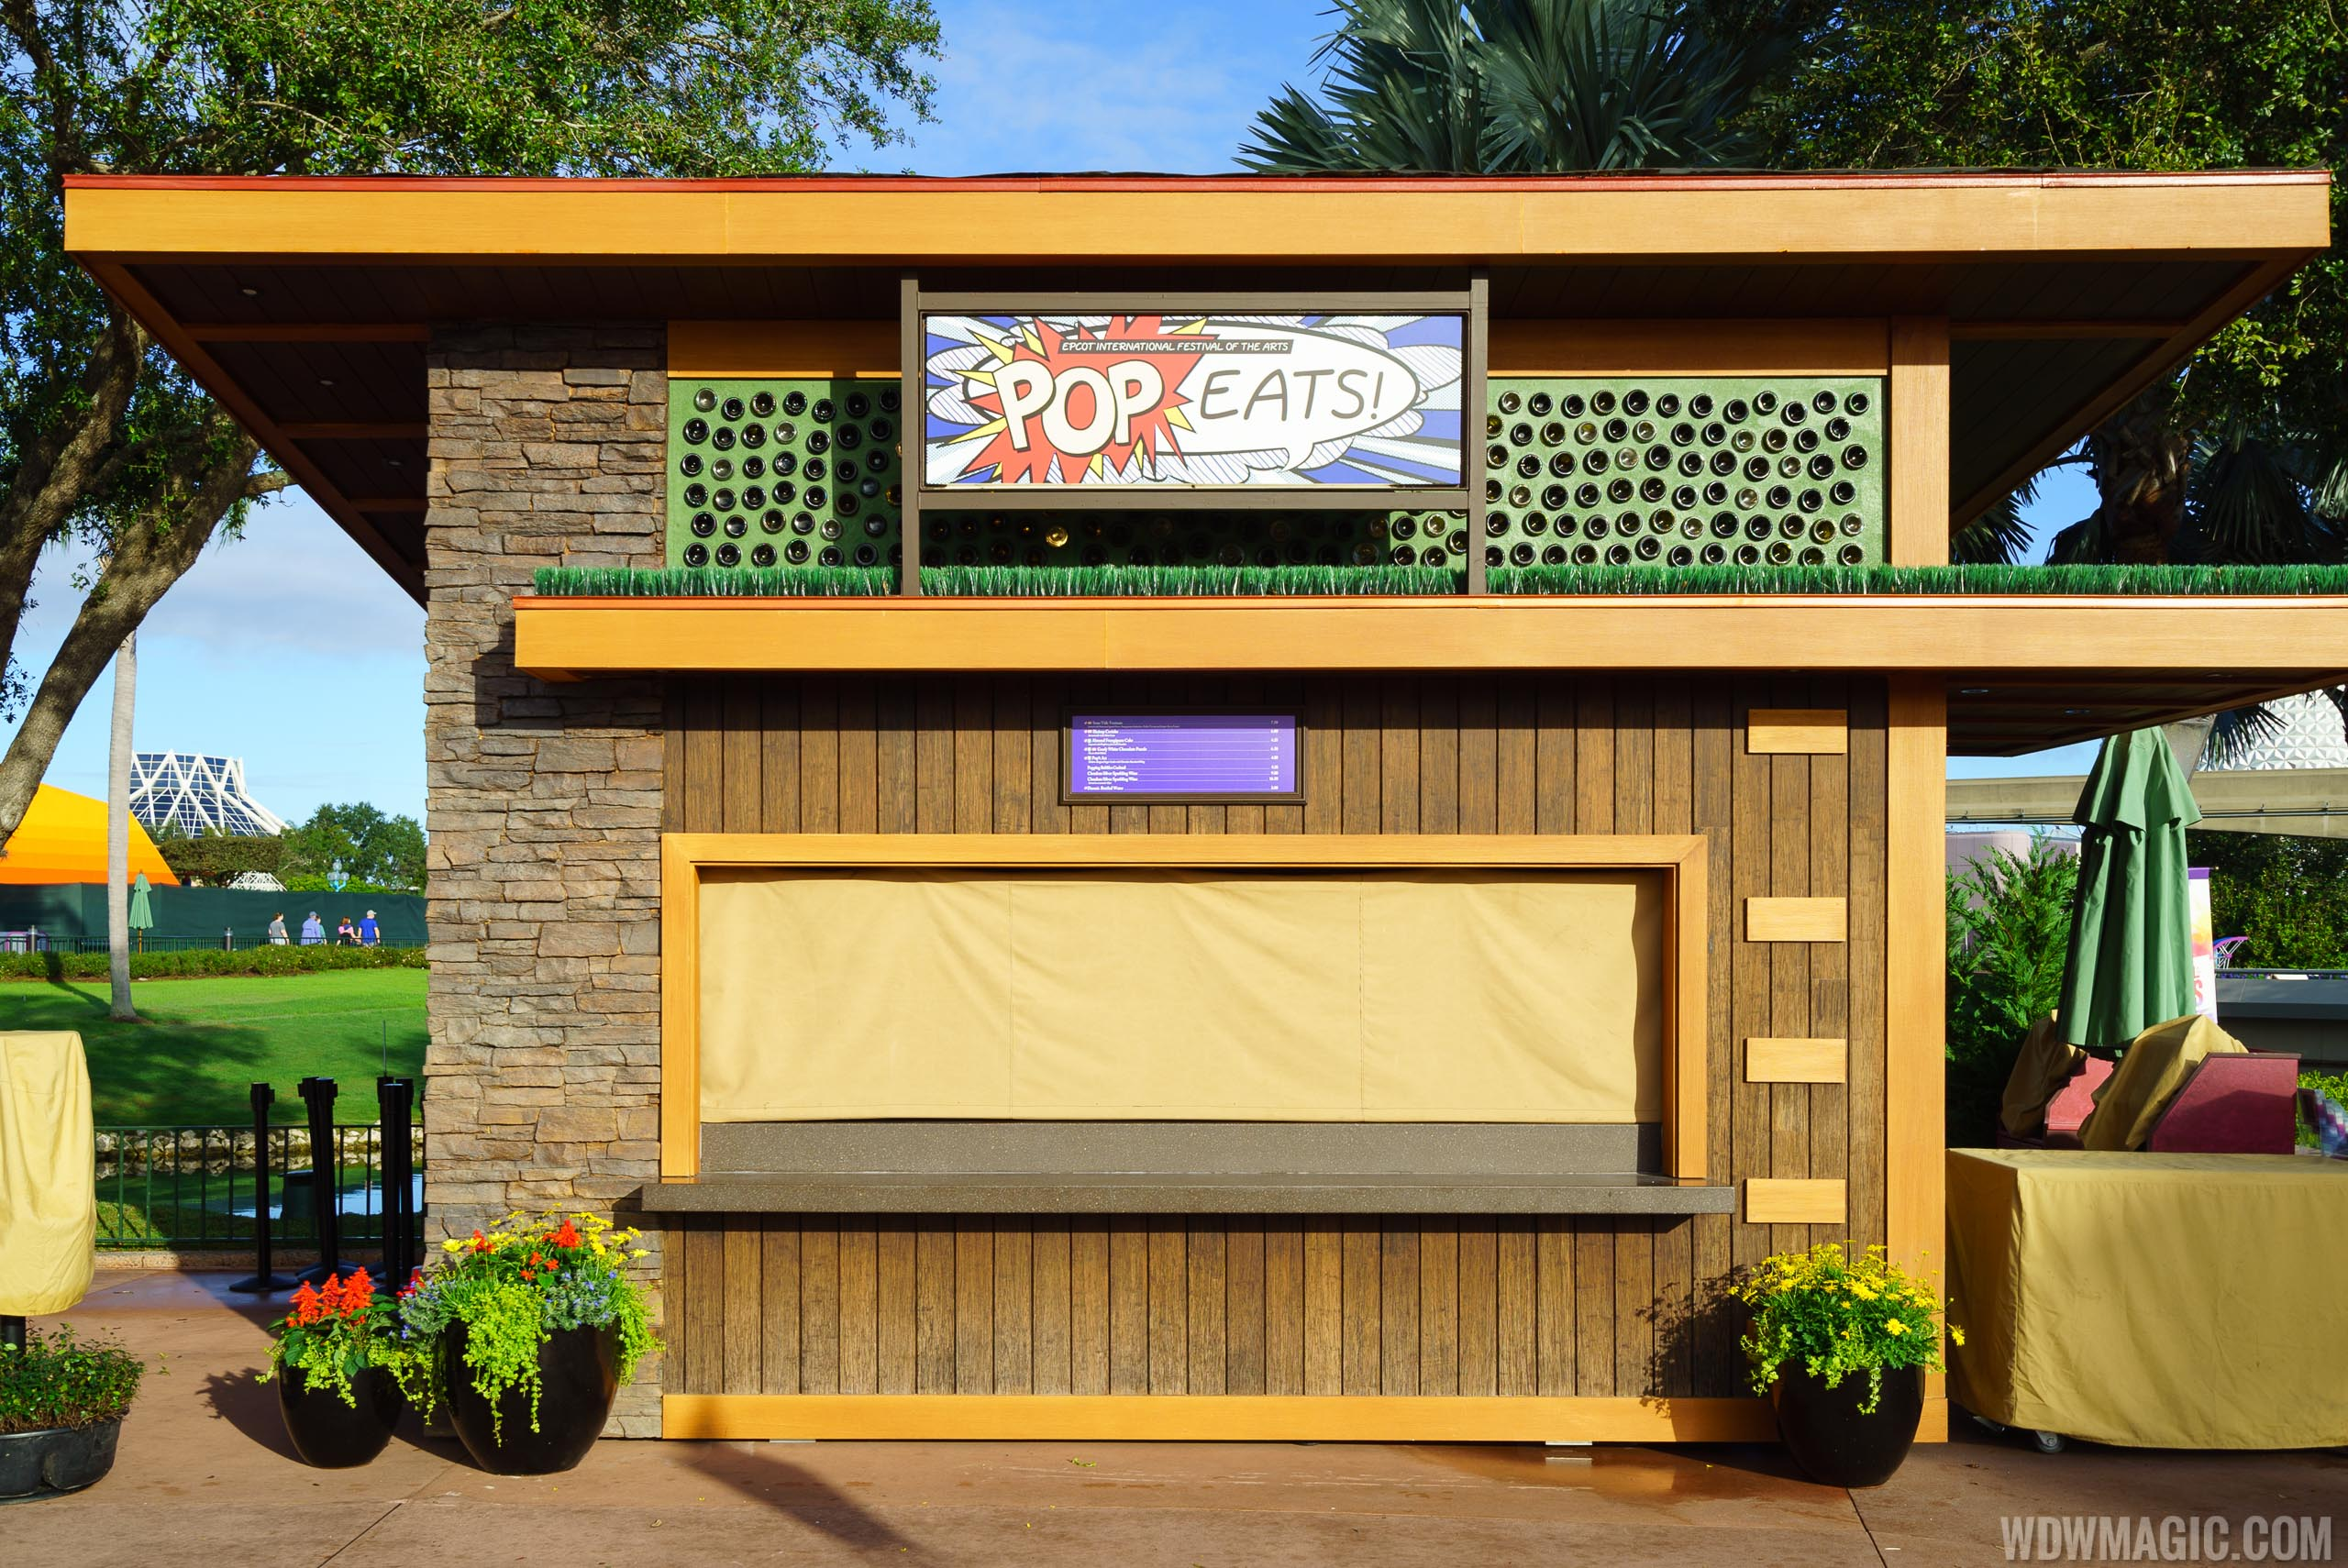 Epcot Festival of the Arts - Pop Eats! kiosk